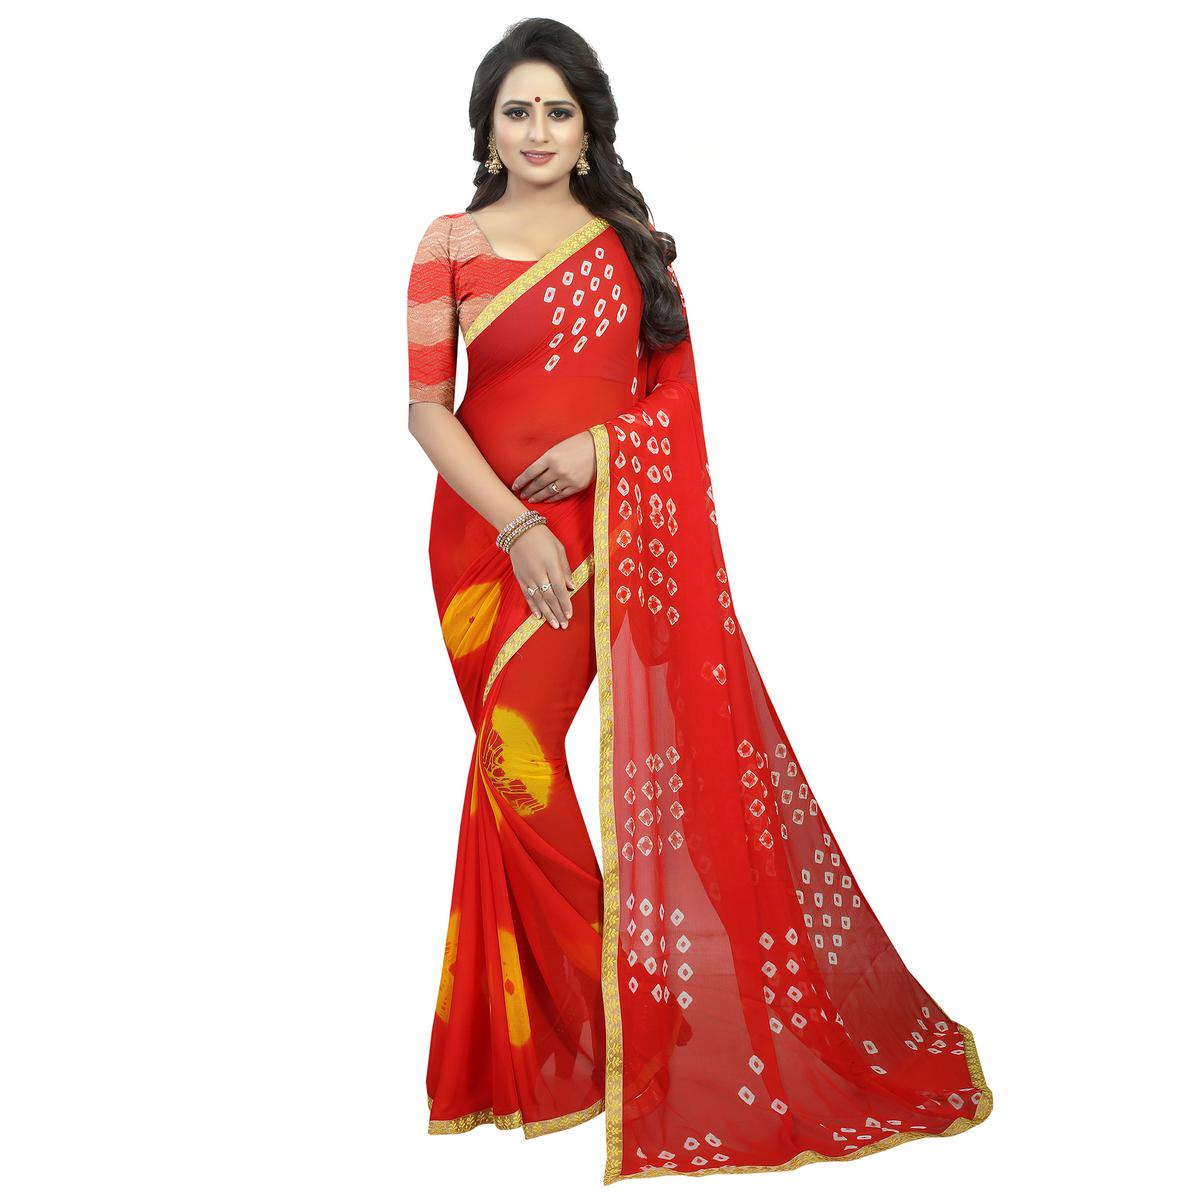 Gleaming Red Colored Casual Printed Chiffon Saree